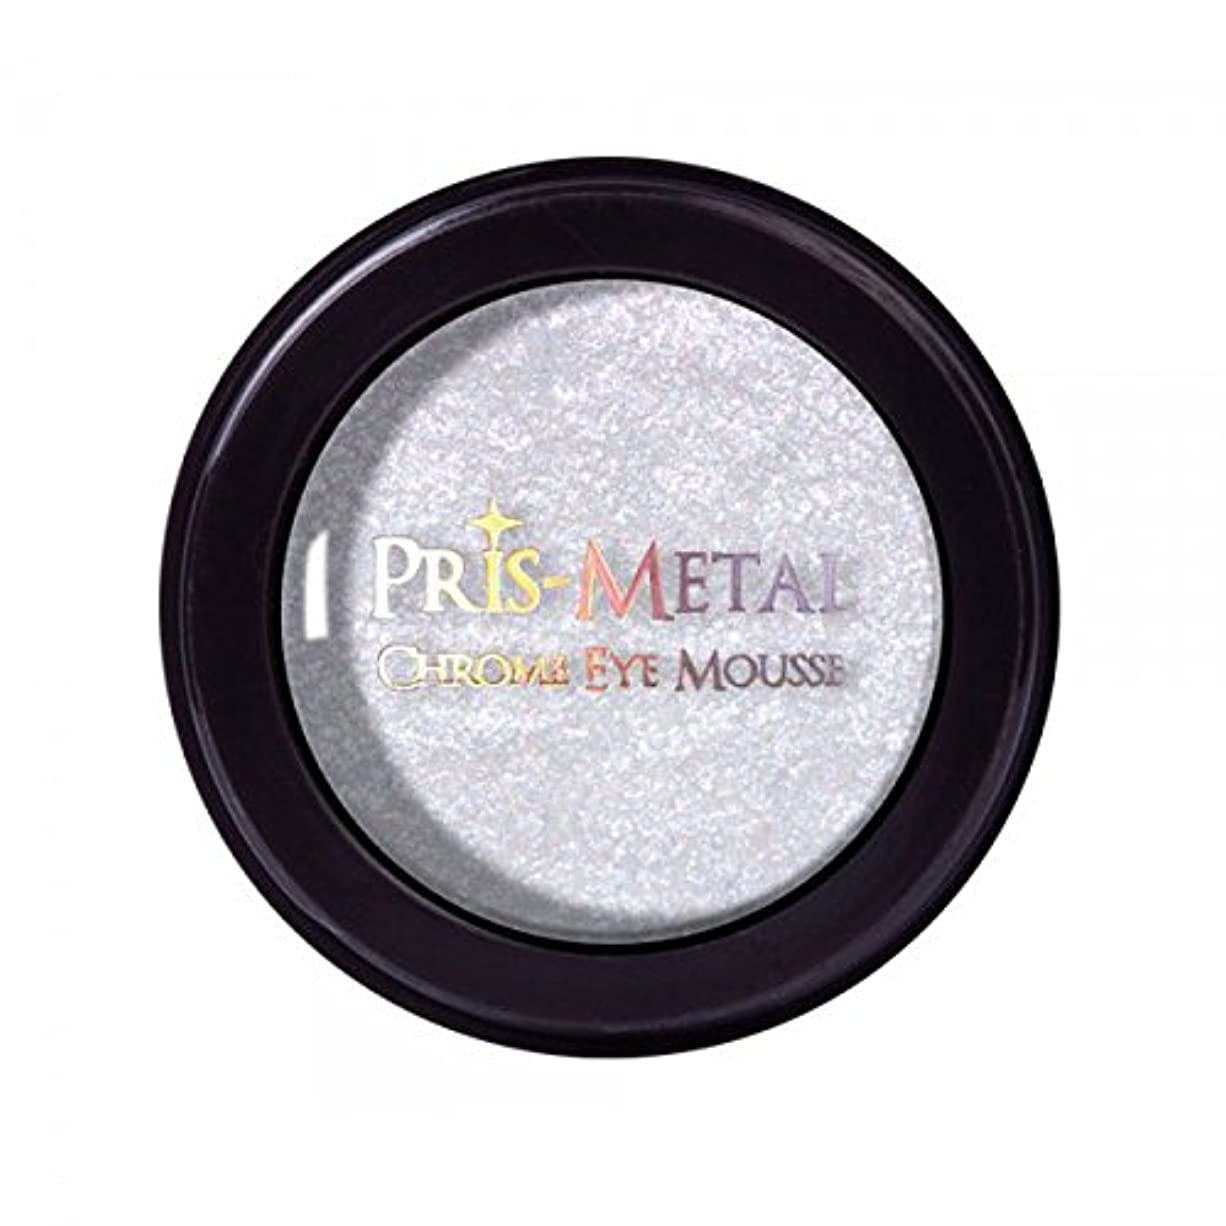 J. CAT BEAUTY Pris-Metal Chrome Eye Mousse - Holography Types (並行輸入品)